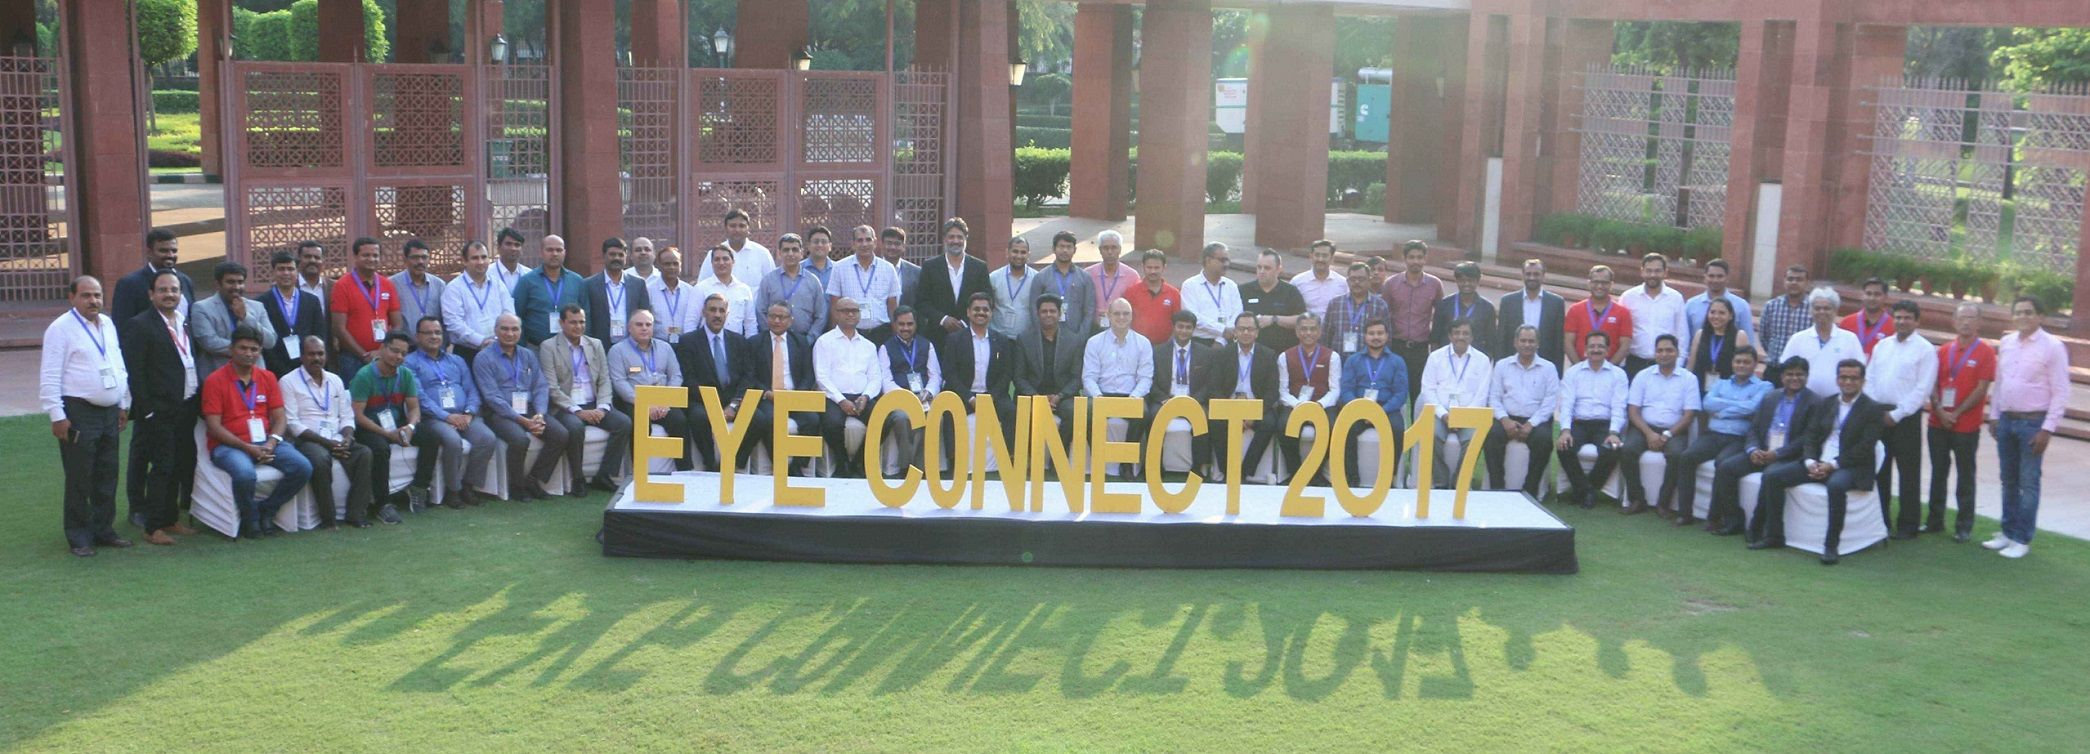 Eye Connect 2017 - Group Photo